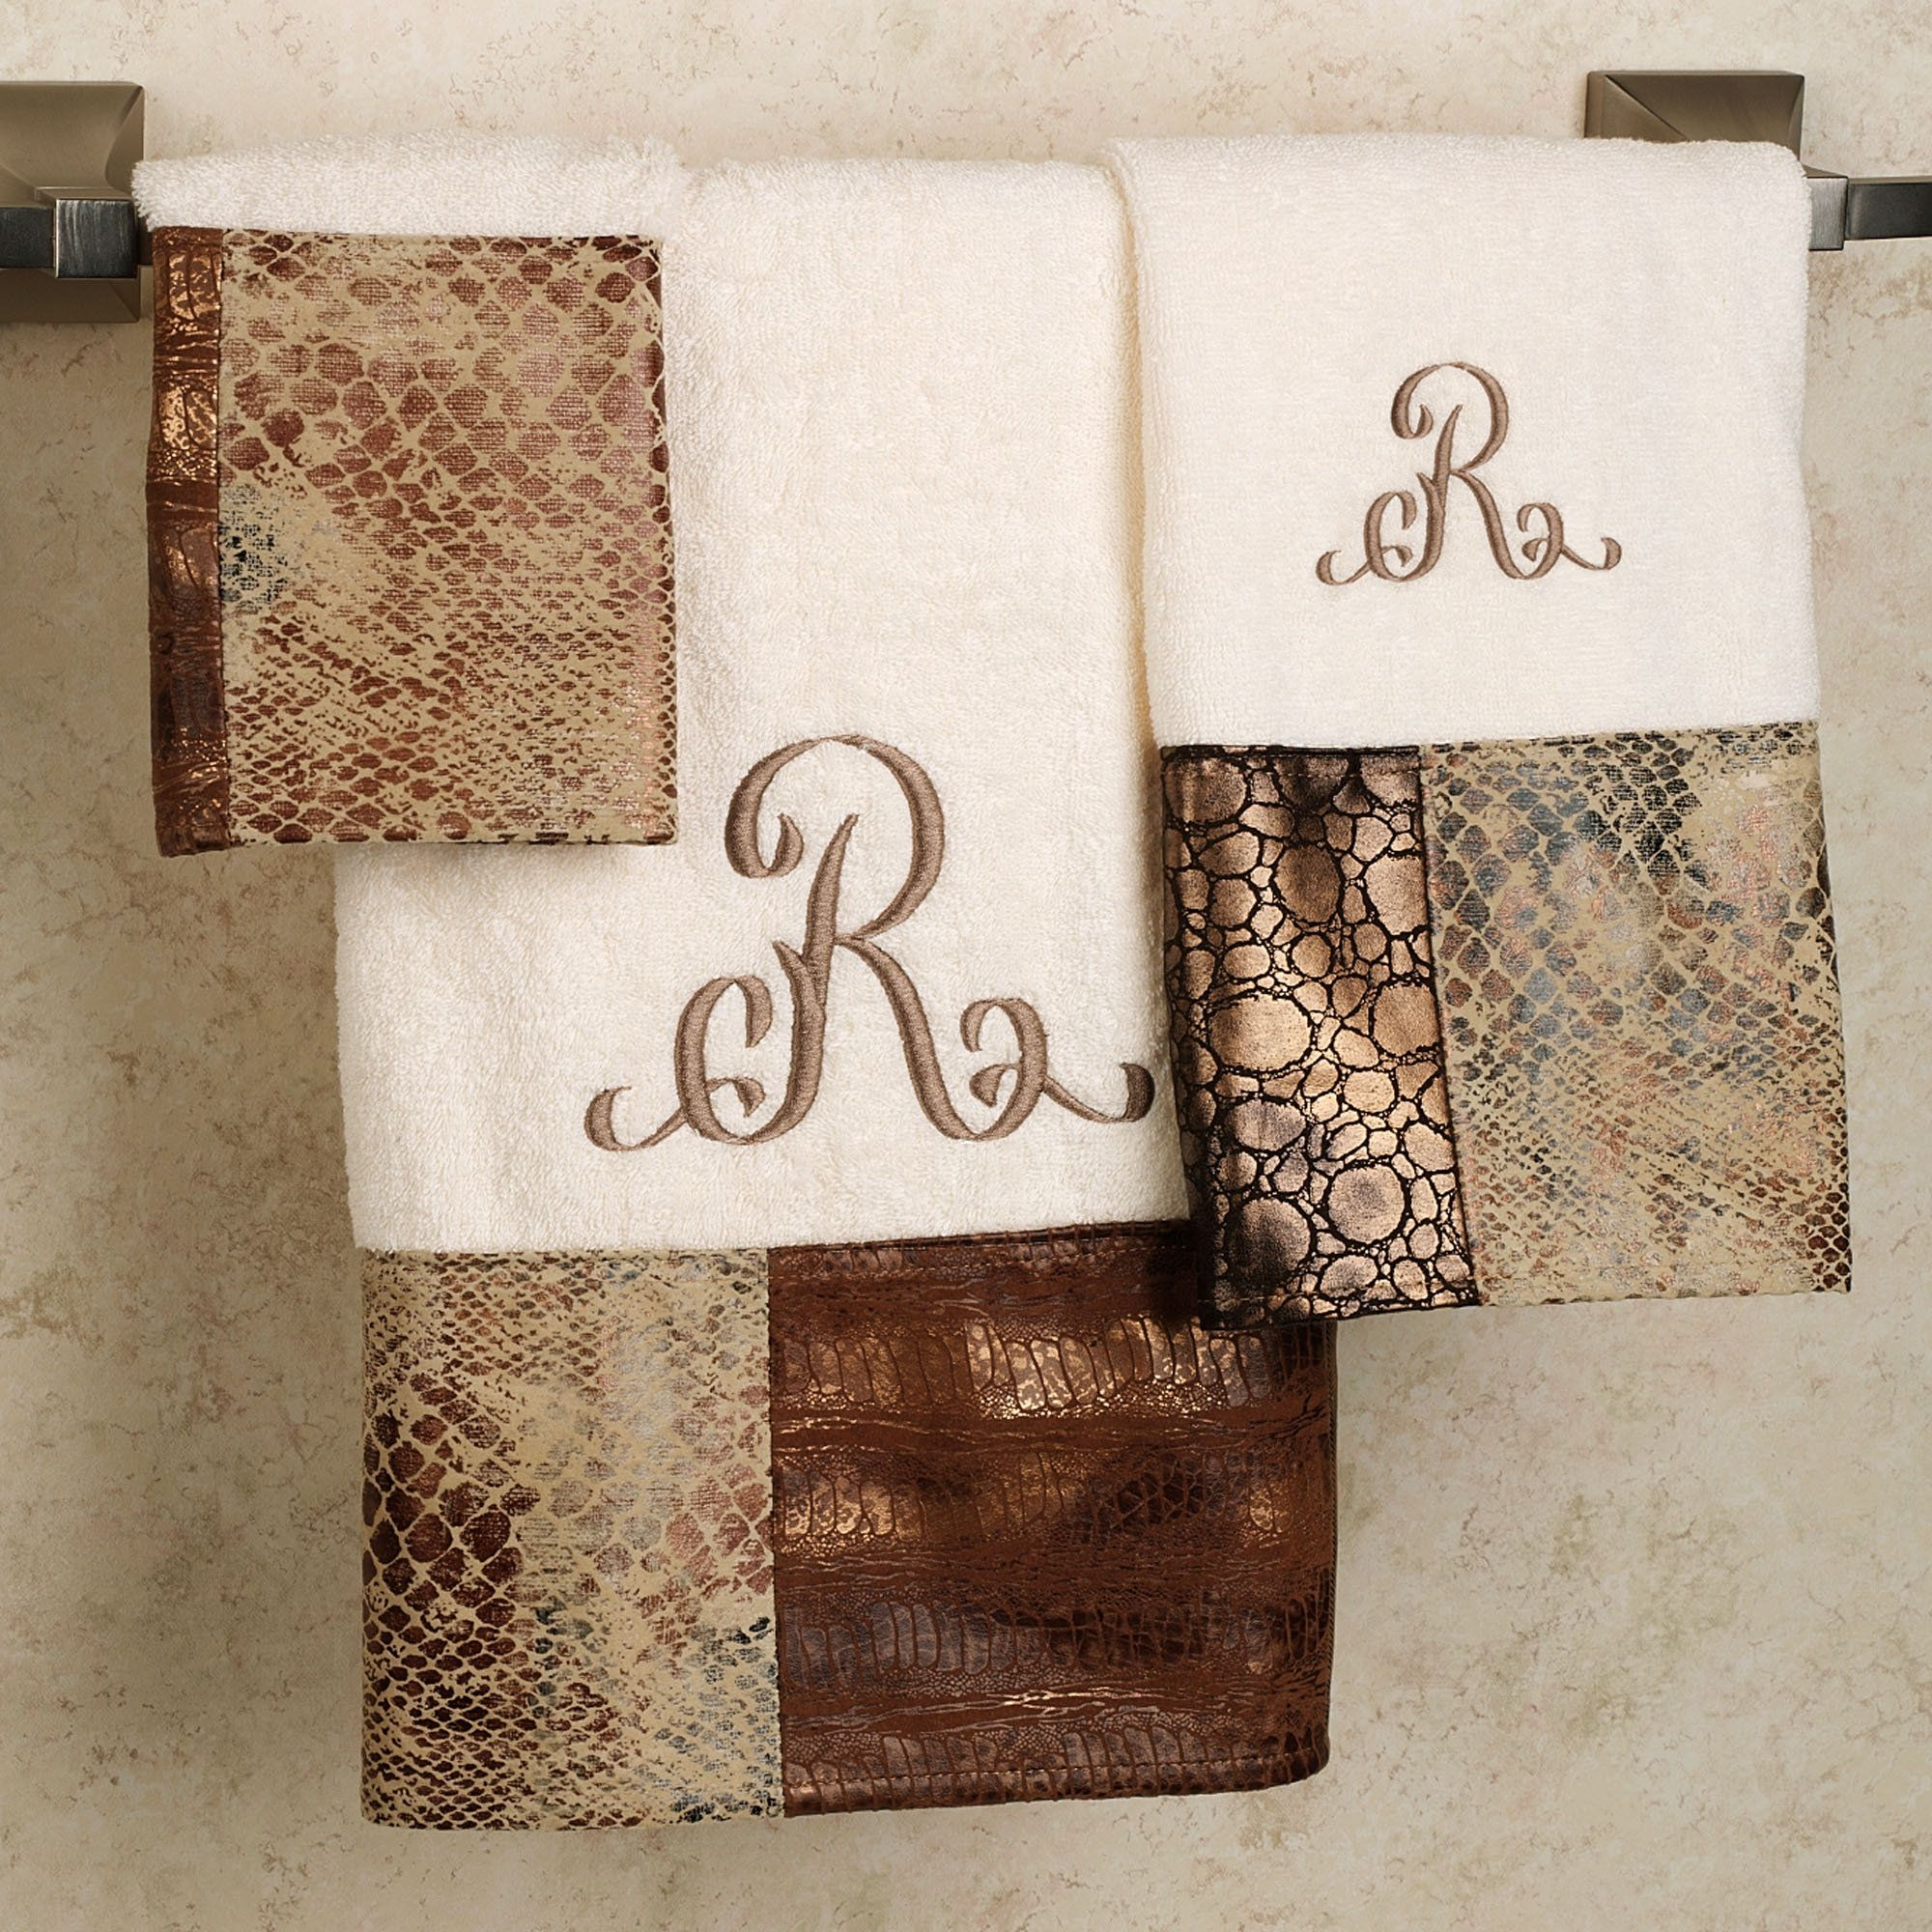 Brown Decorative Bath Towels Decorative Bath Towels Decorative Towels Decorative Bath Towel Sets